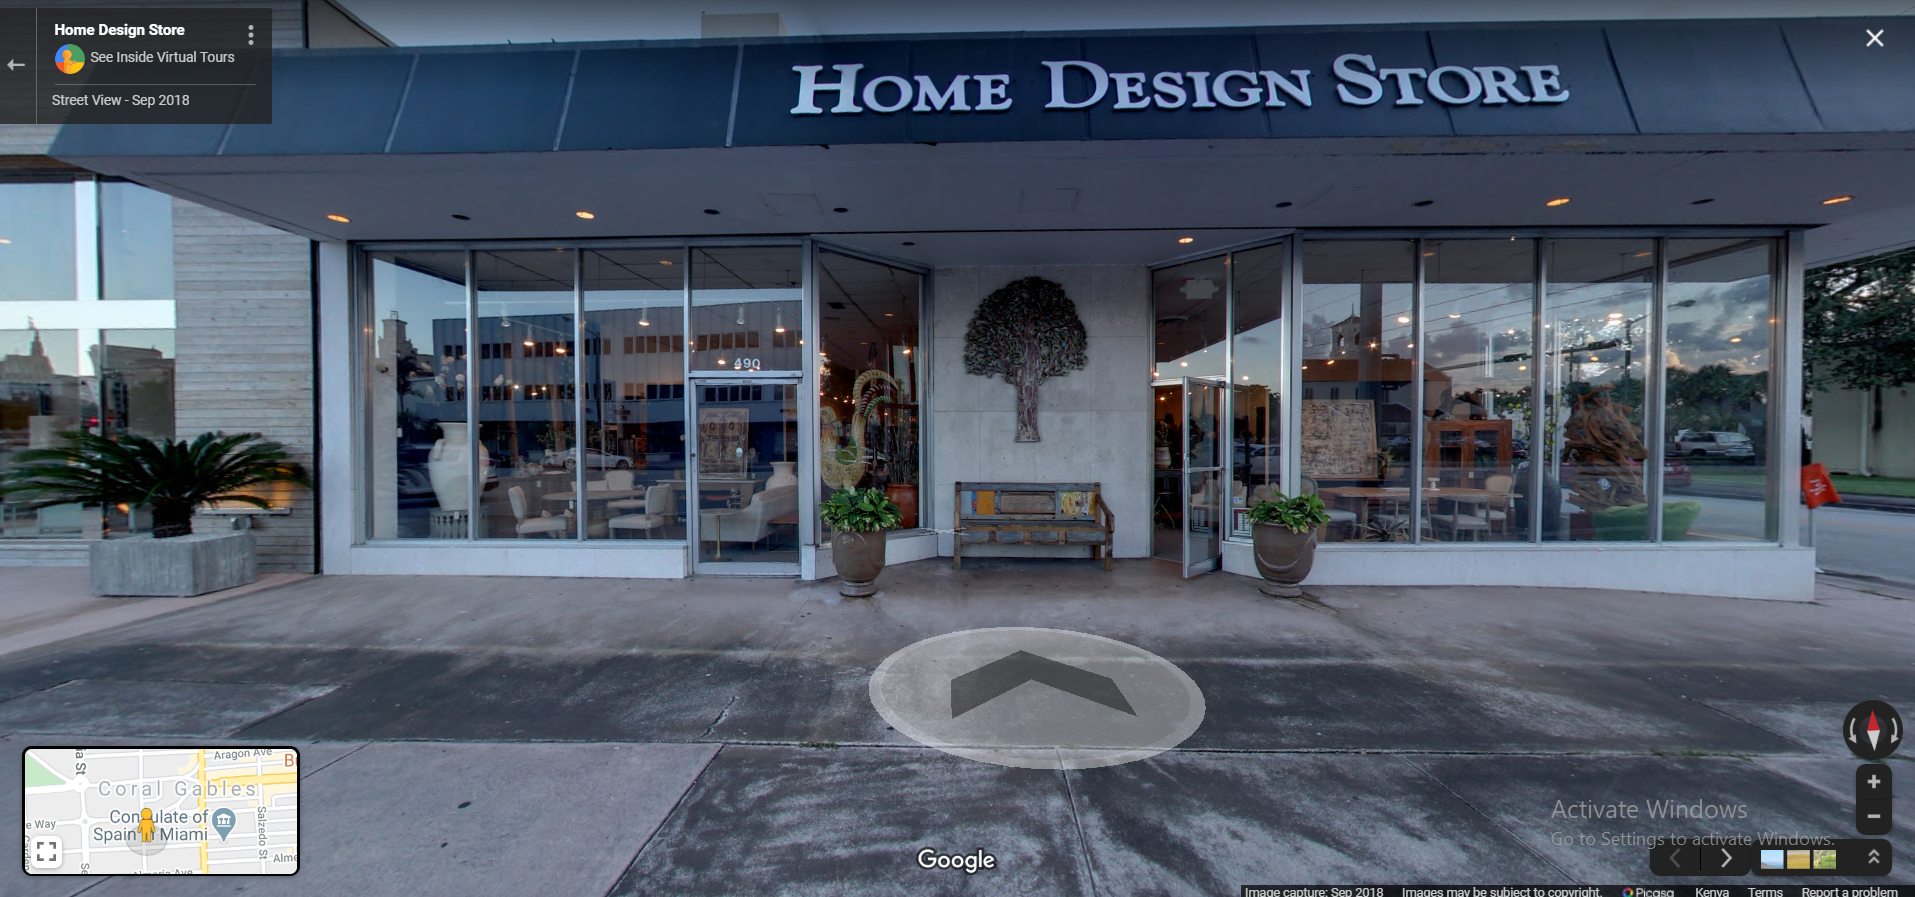 Home Design Store  Coral Gables